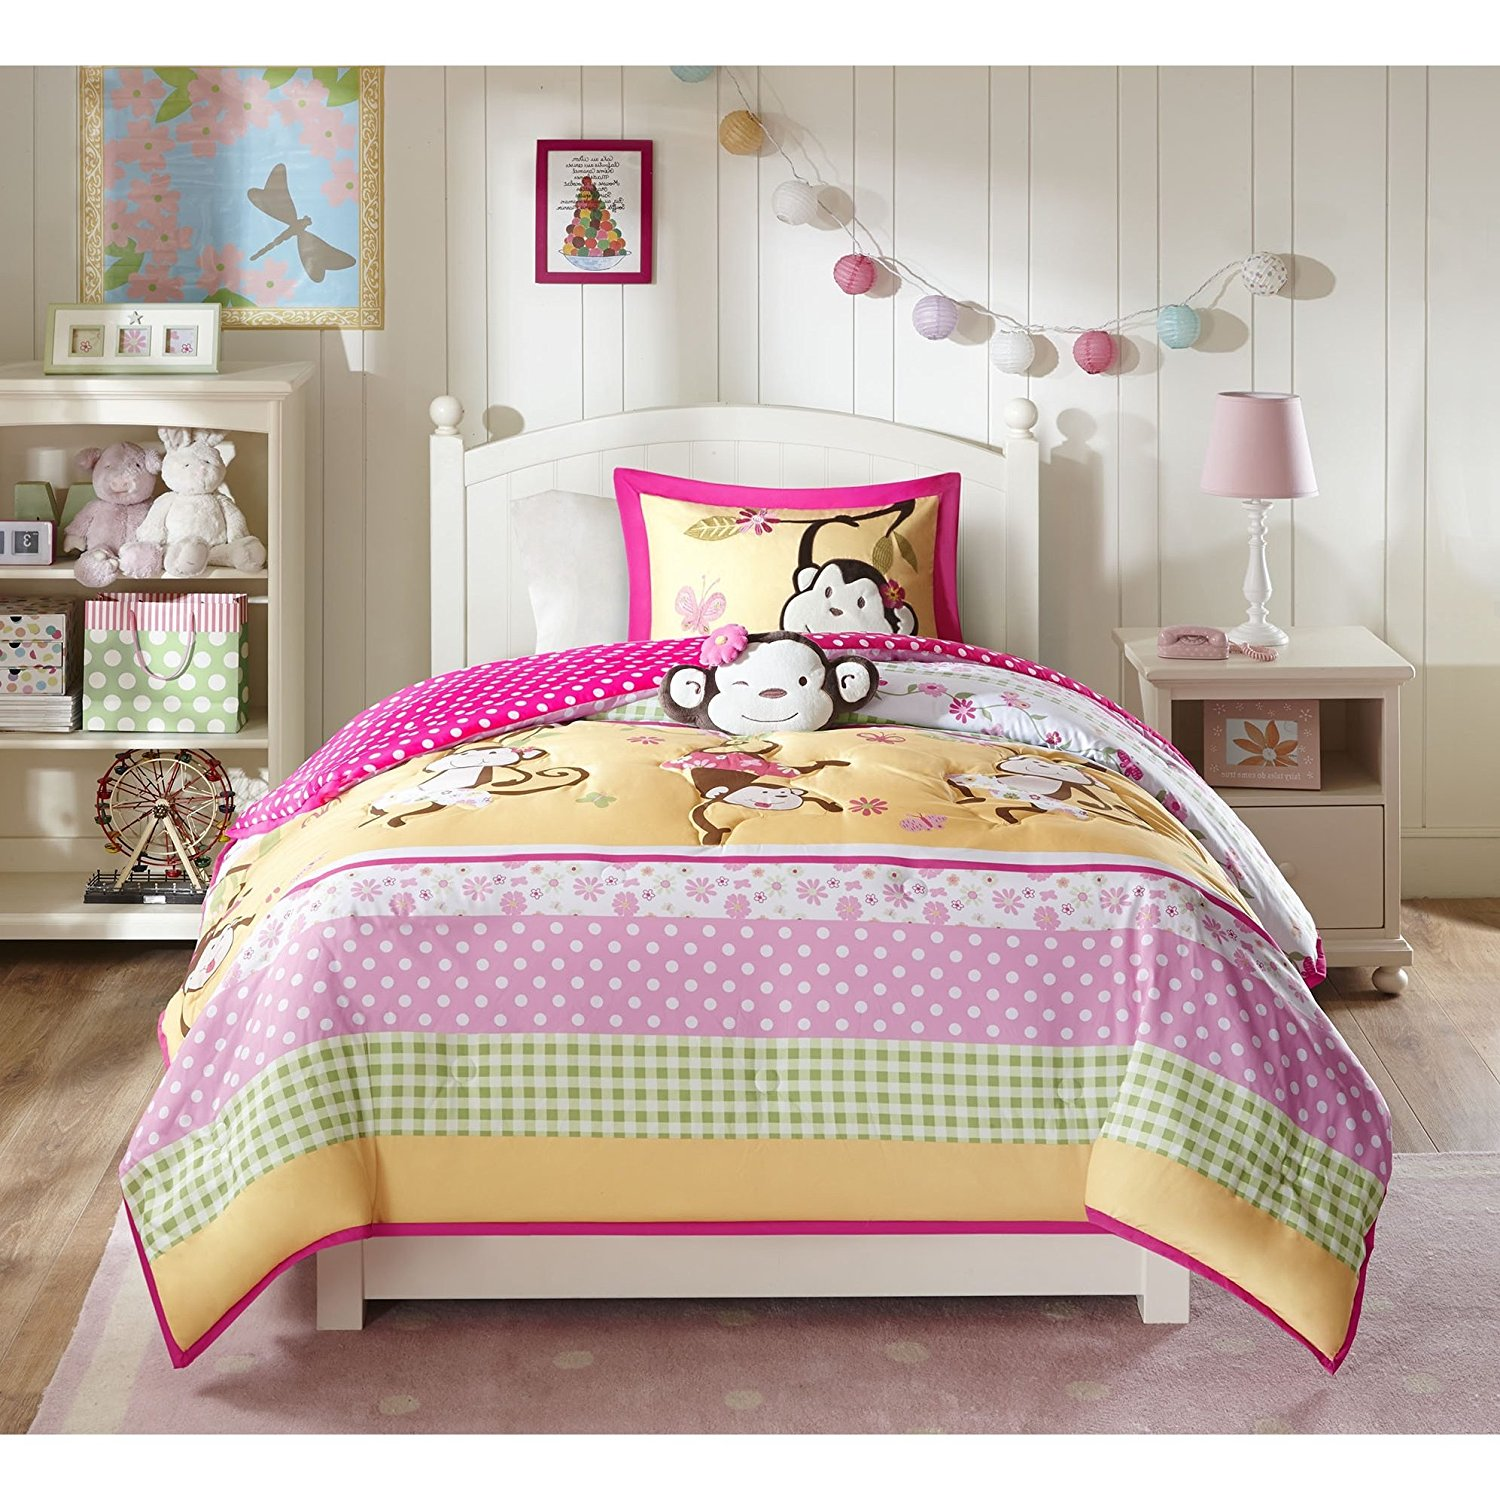 4 Piece Kids Multi Color Monkey Maze Comforter Set Full Queen, Pink Brown Green Monkeys Hanging Swinging Vine Motif Teen Themed Kids Bedding Reversible Polka Dot Casual Colorful, Polyester Microfiber